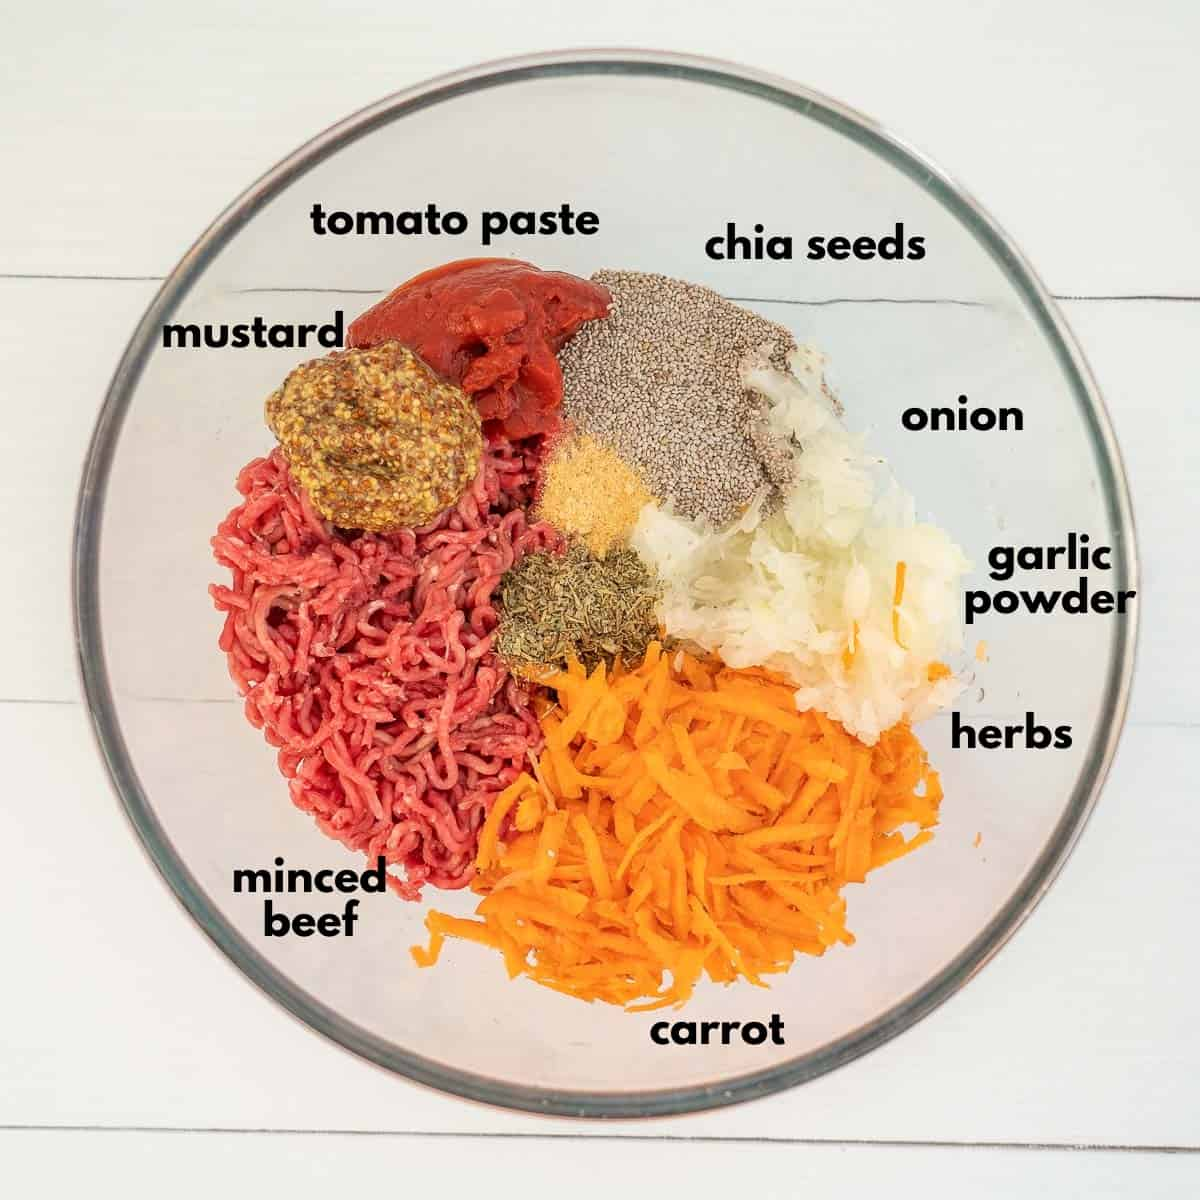 image labeling the meatloaf ingredients, minced beef, mustard, chia seeds, tomato paste, carrot, onion, herbs and spices